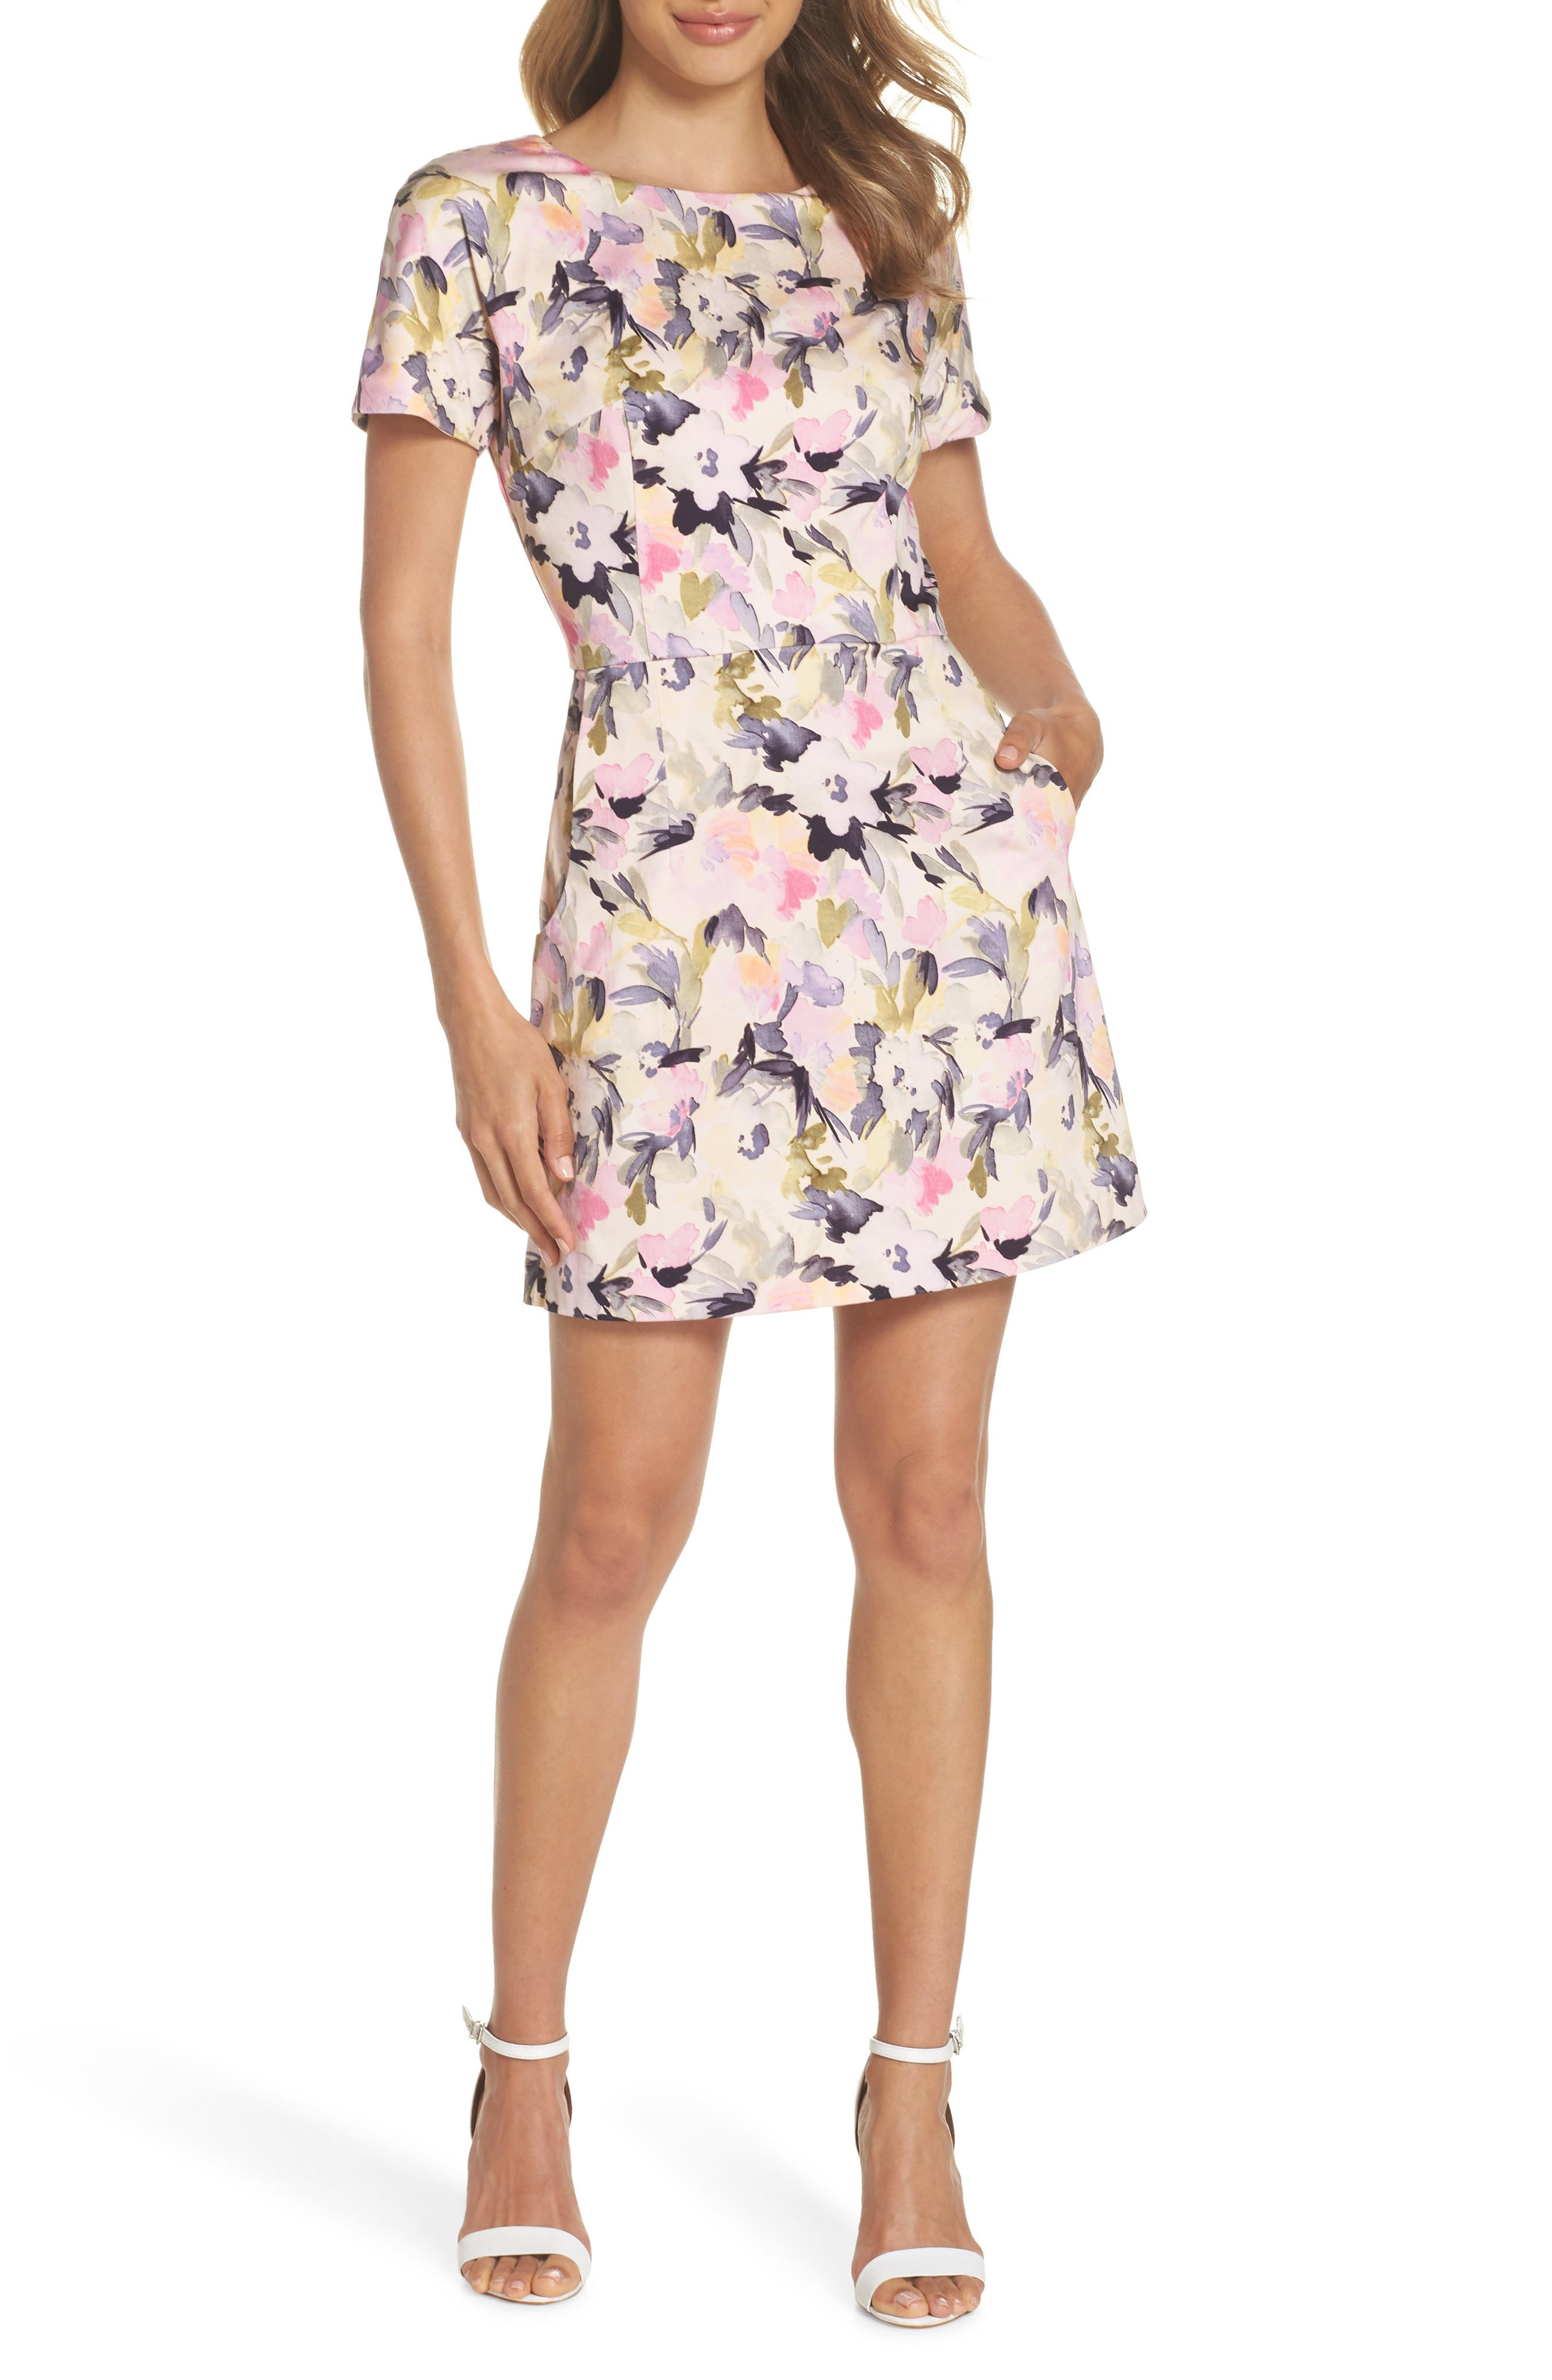 French Connection Catlett Cotton Dress